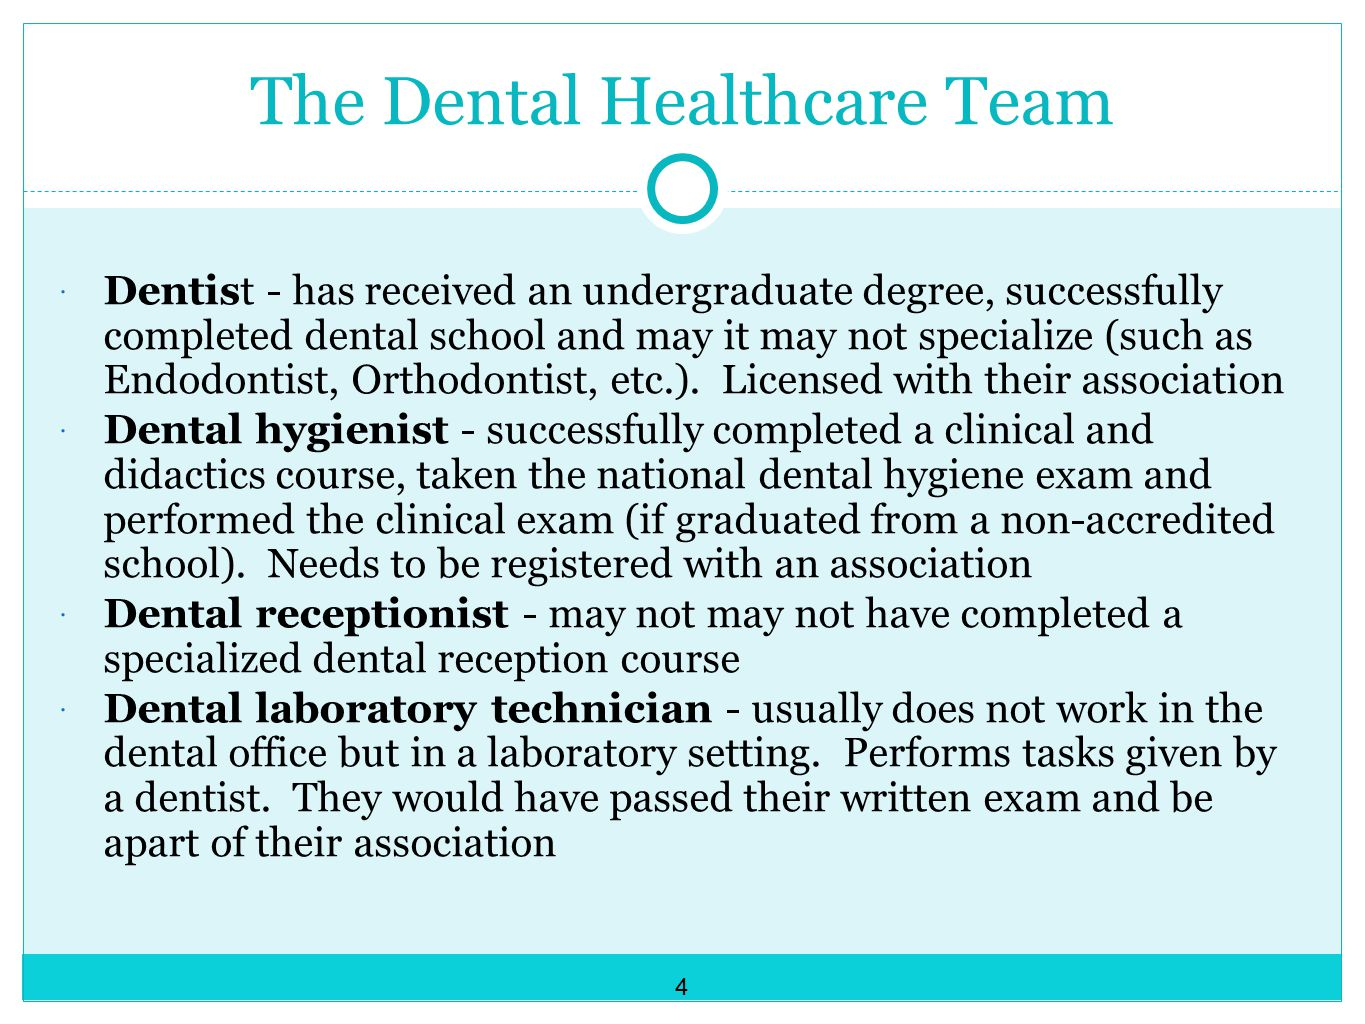 The Dental Healthcare Team  Dentist - has received an undergraduate degree, successfully completed dental school and may it may not specialize (such as Endodontist, Orthodontist, etc.).